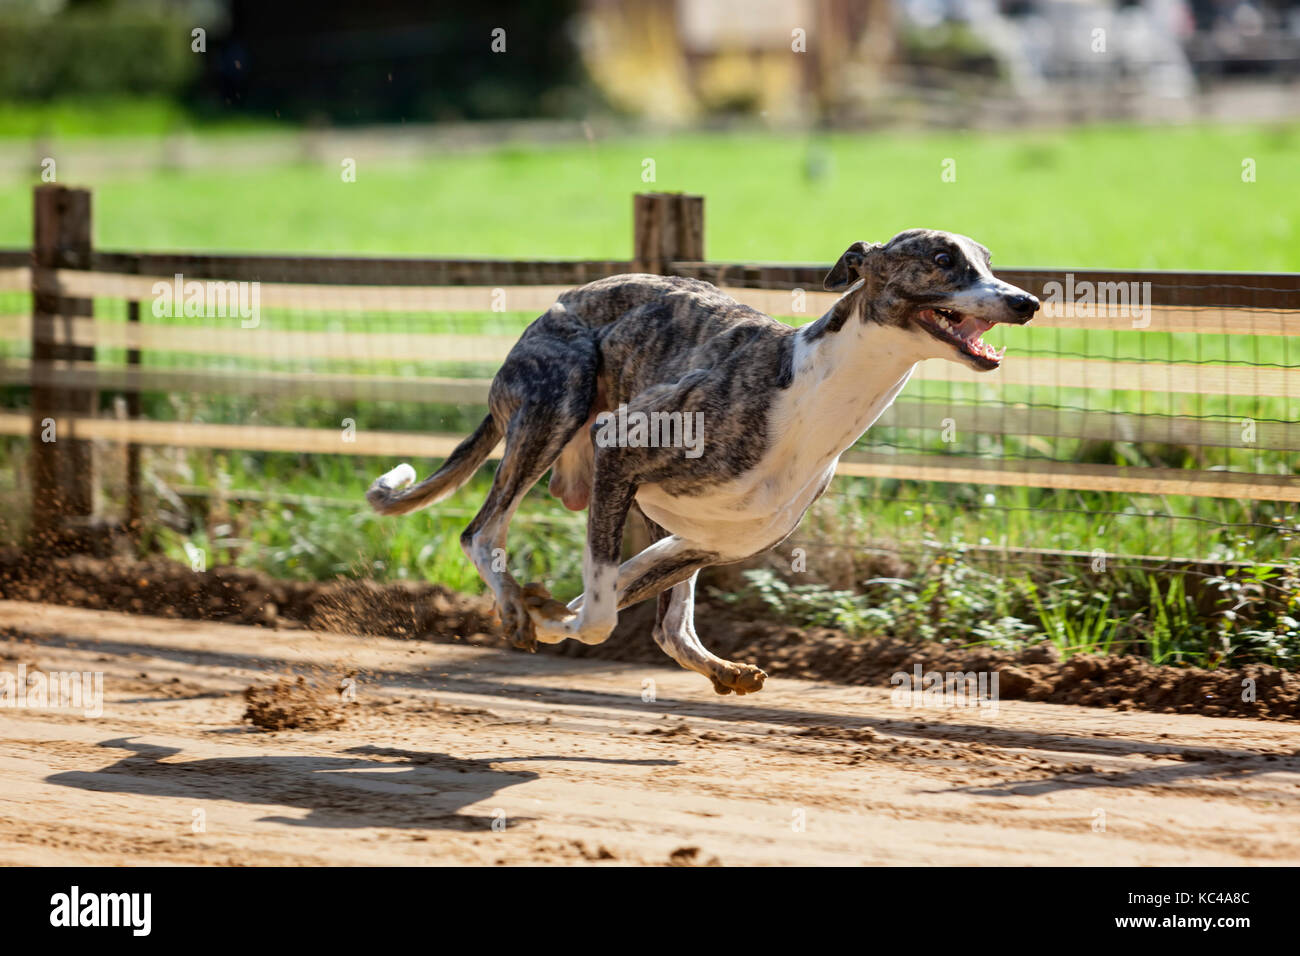 Male Whippet sighhound training on the race track - Stock Image